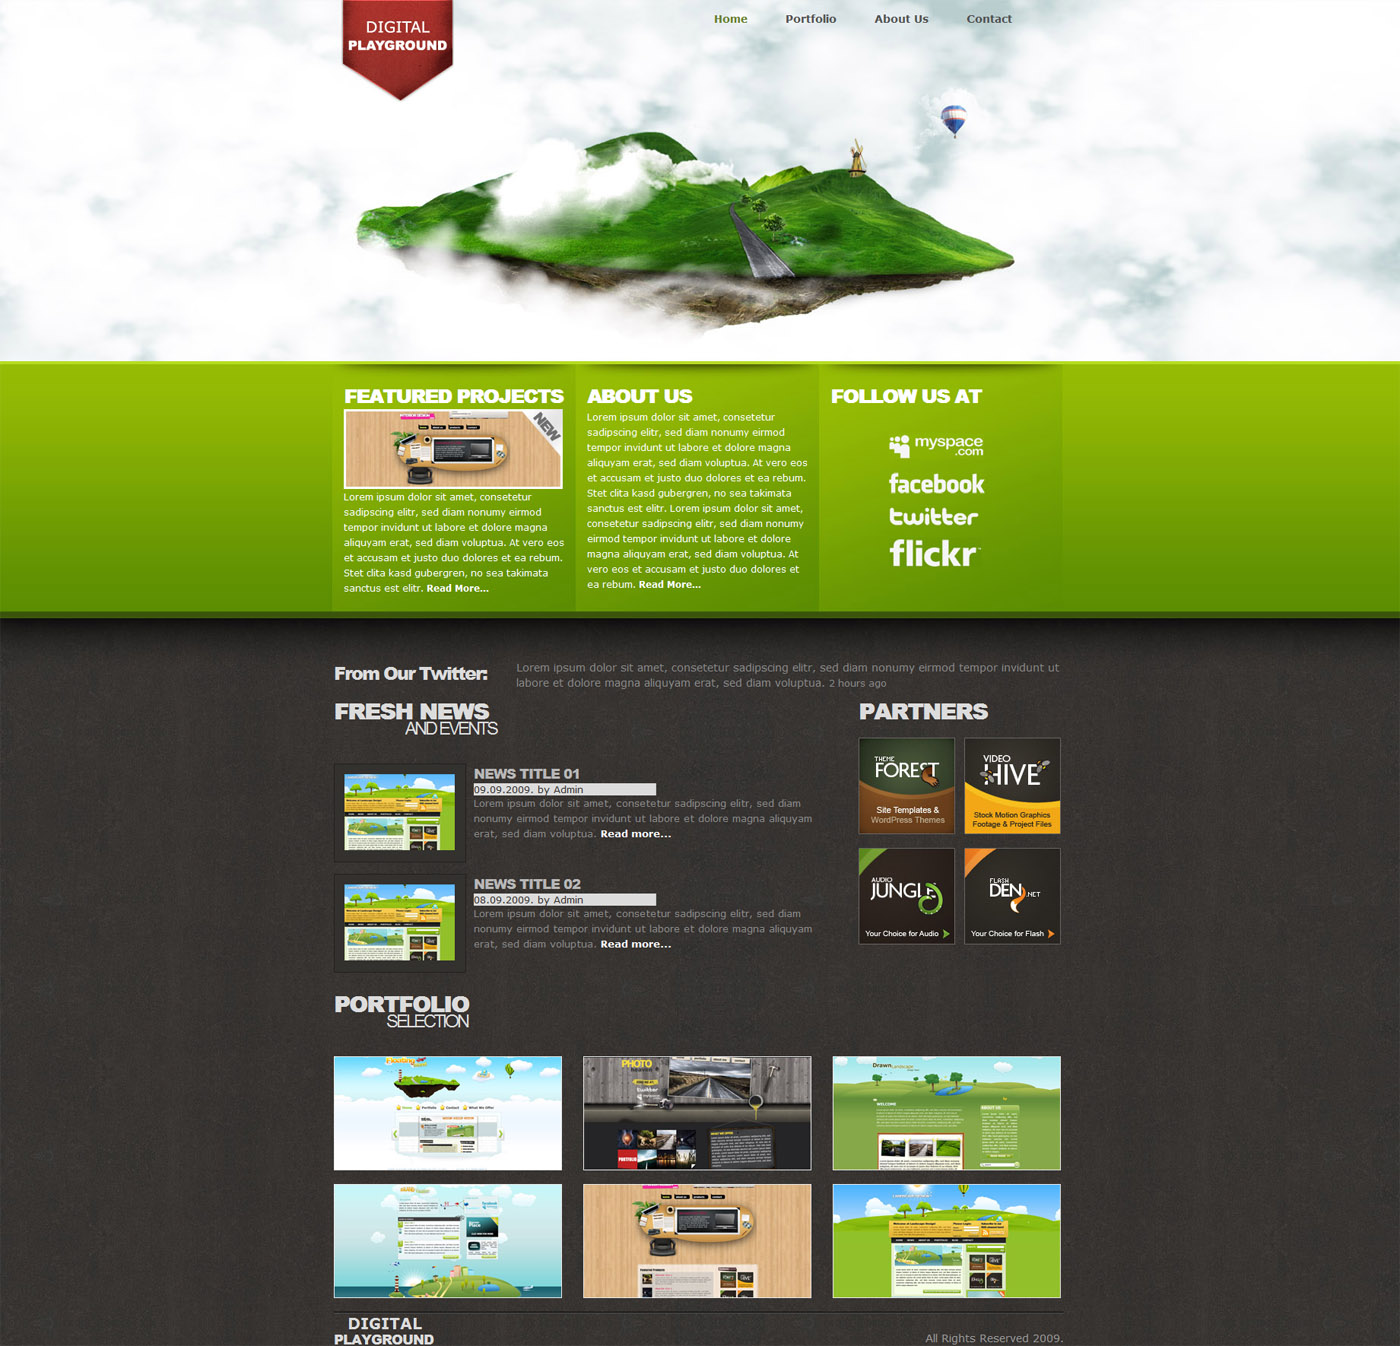 Free Download Digital Playground Modern Floating Island Template Nulled Latest Version